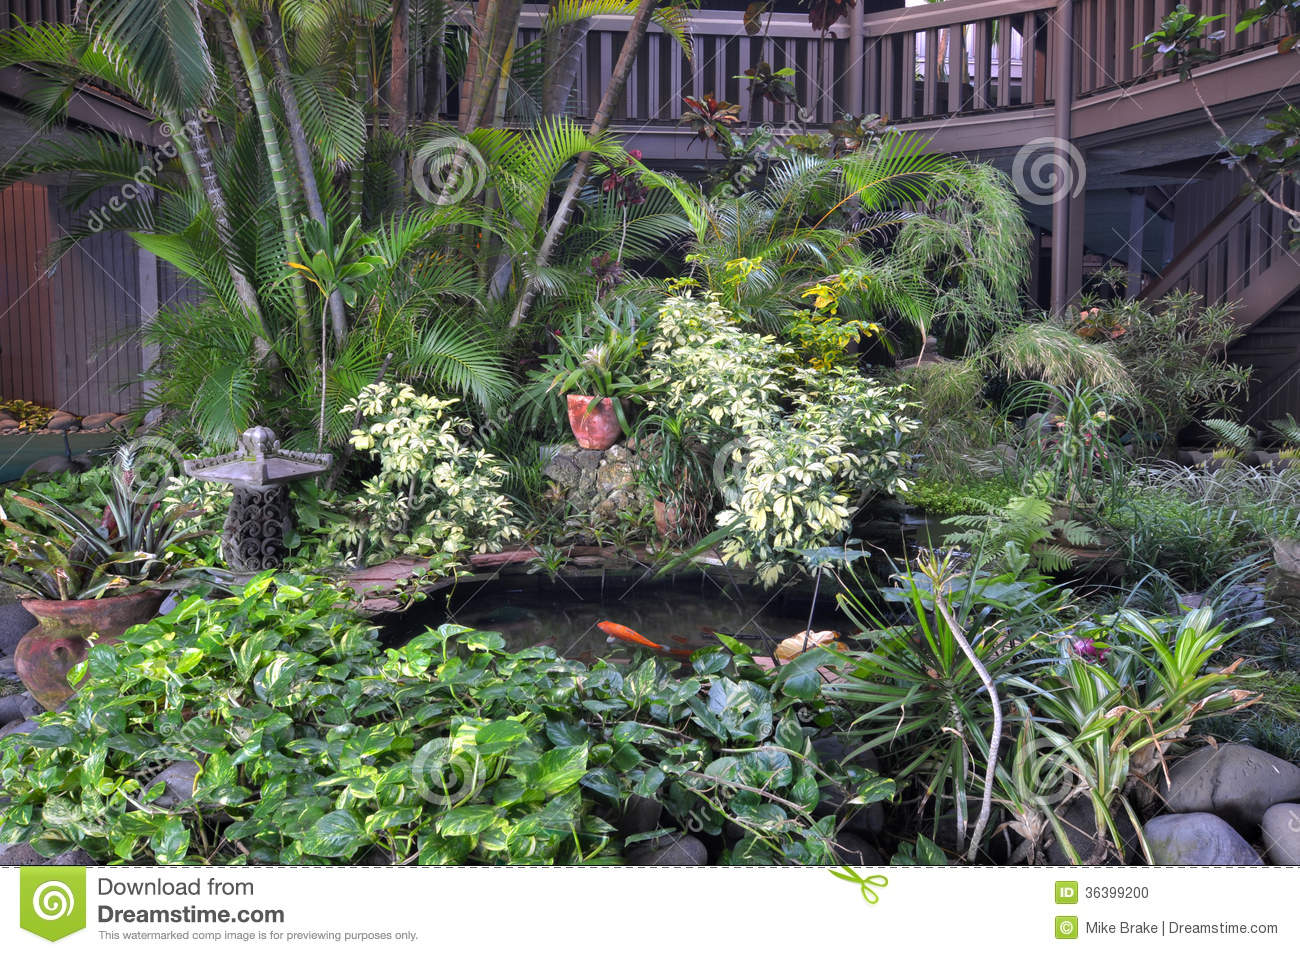 Jardin tropical d 39 int rieur photo stock image 36399200 for Jardin d interieur